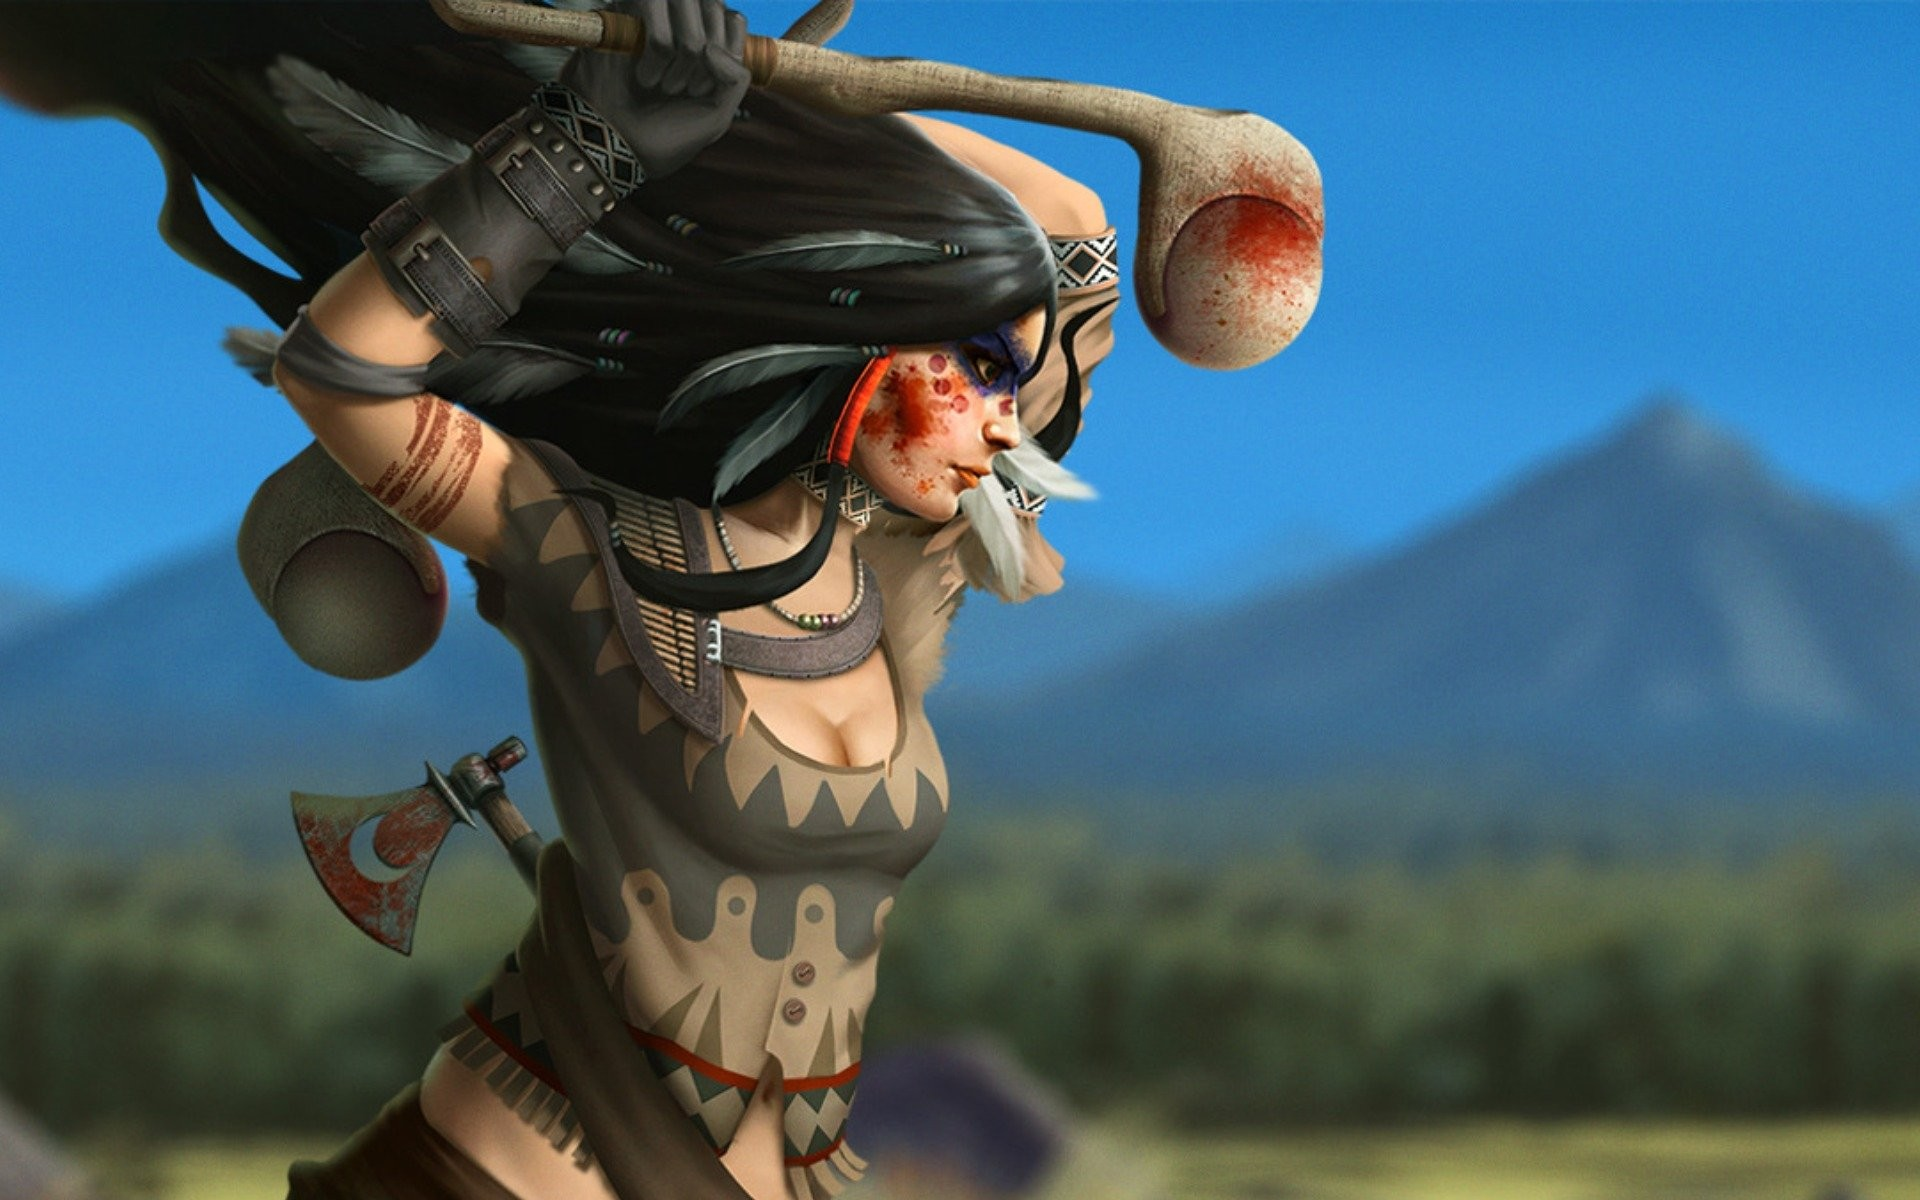 Native American Indian HD Images Wallpapers 12995 – HD Wallpapers Site